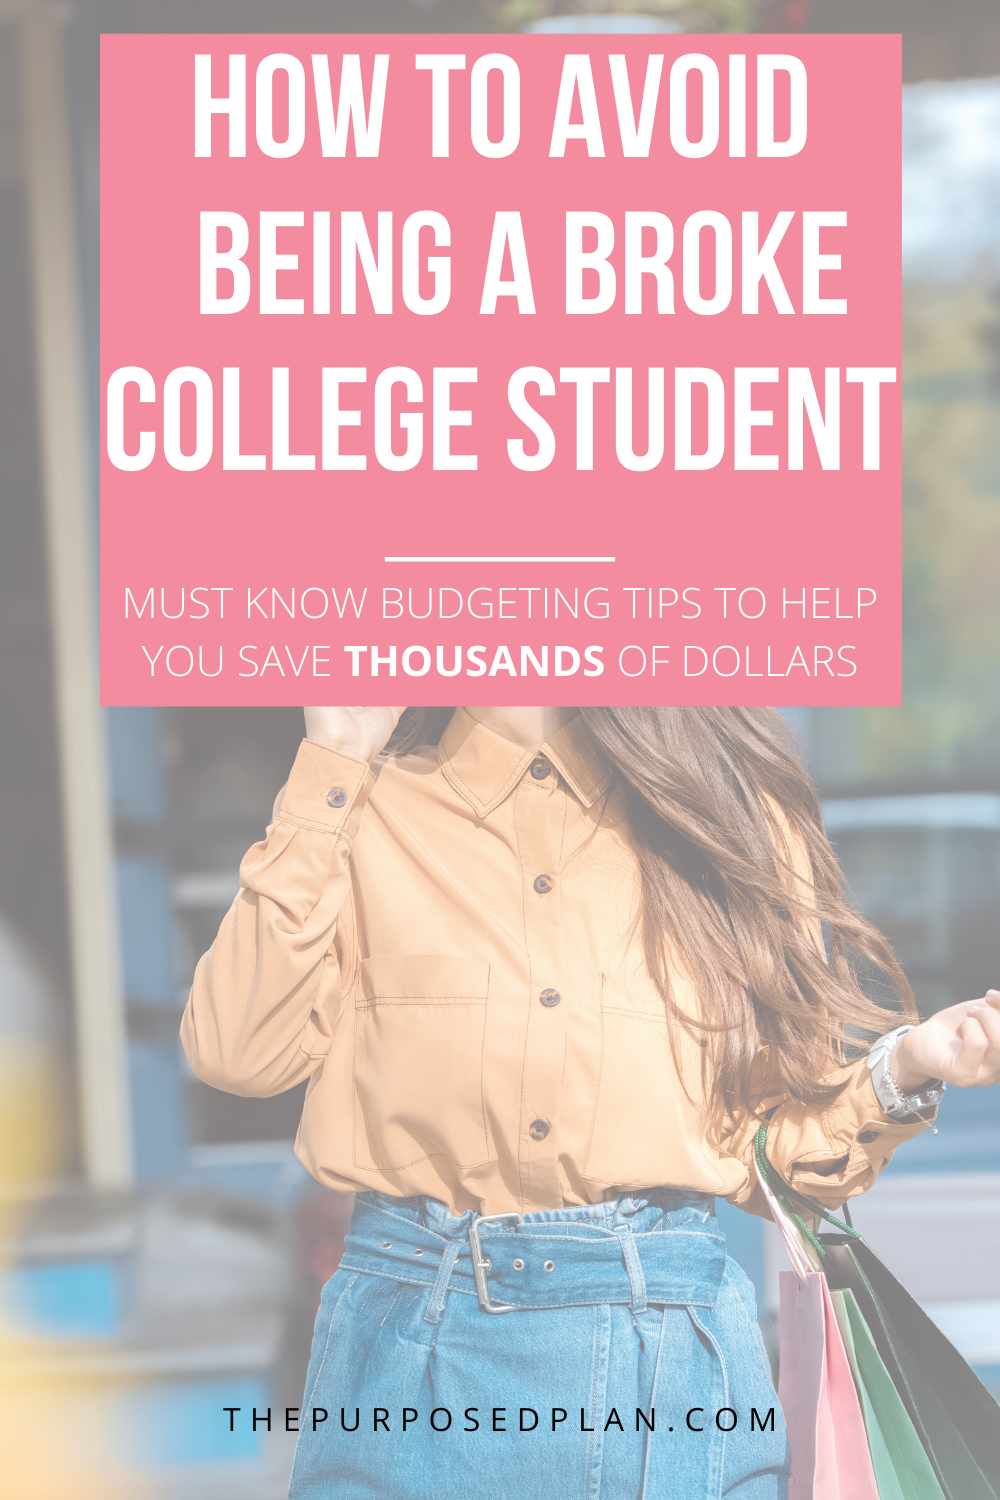 HOW TO CREATE A COLLEGE BUDGET